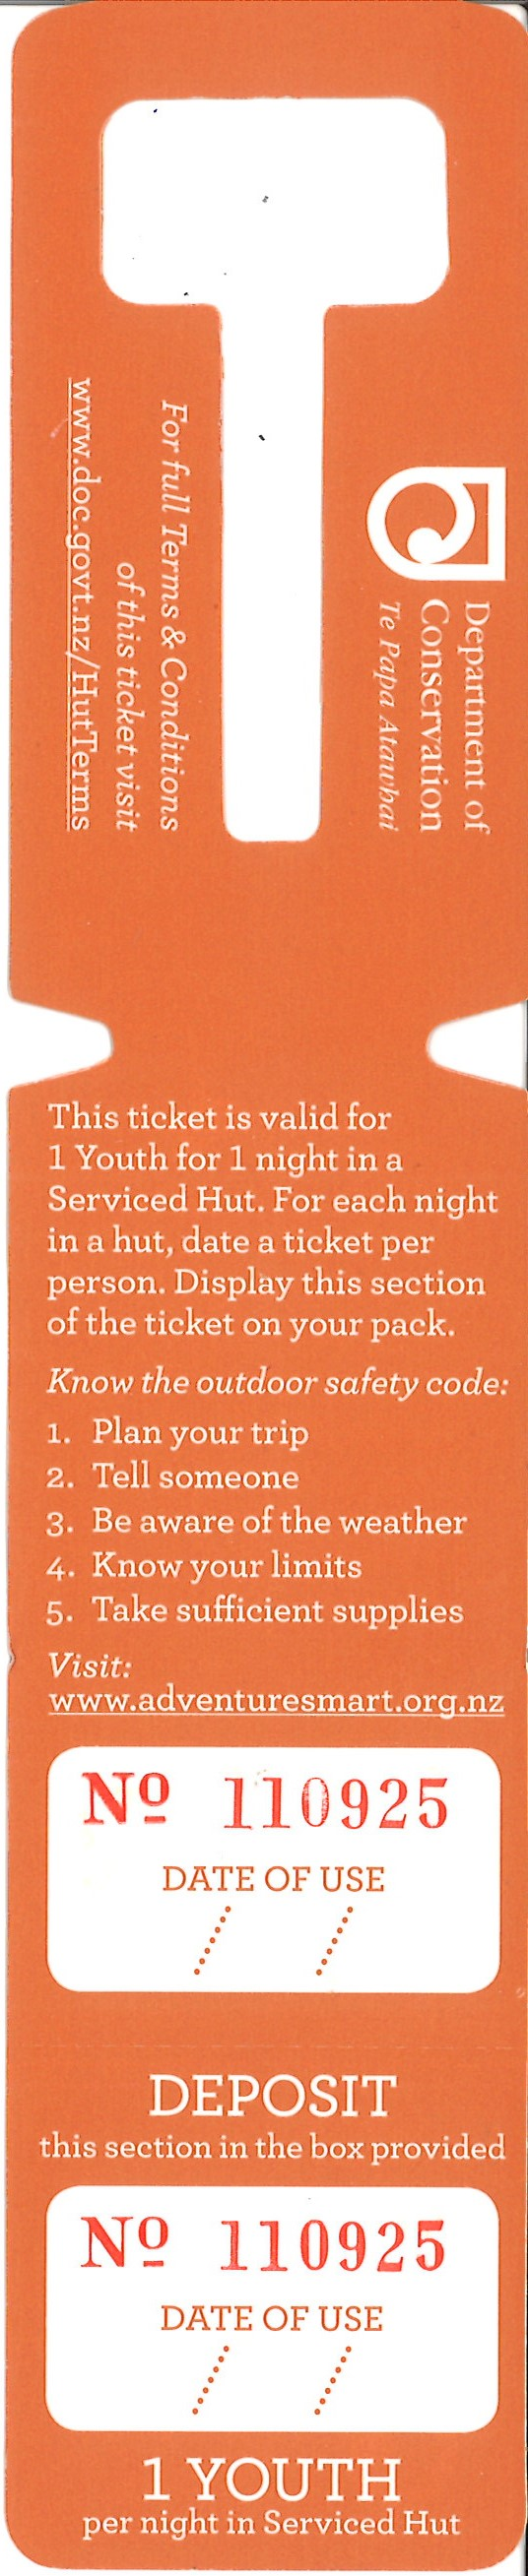 DoC Hut ticket - Serviced Youth